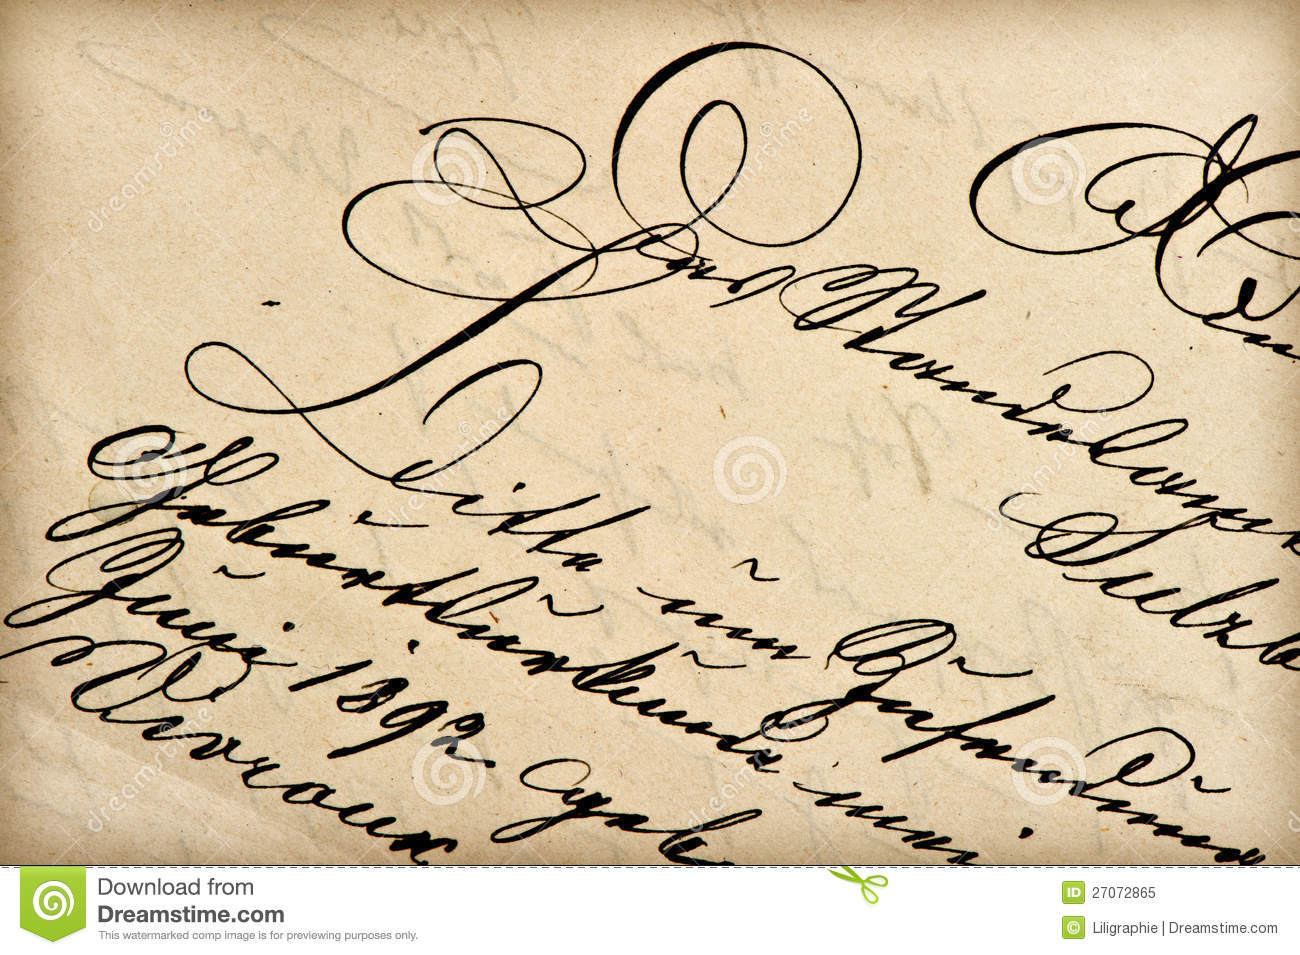 How To Write Old Fashioned Handwriting